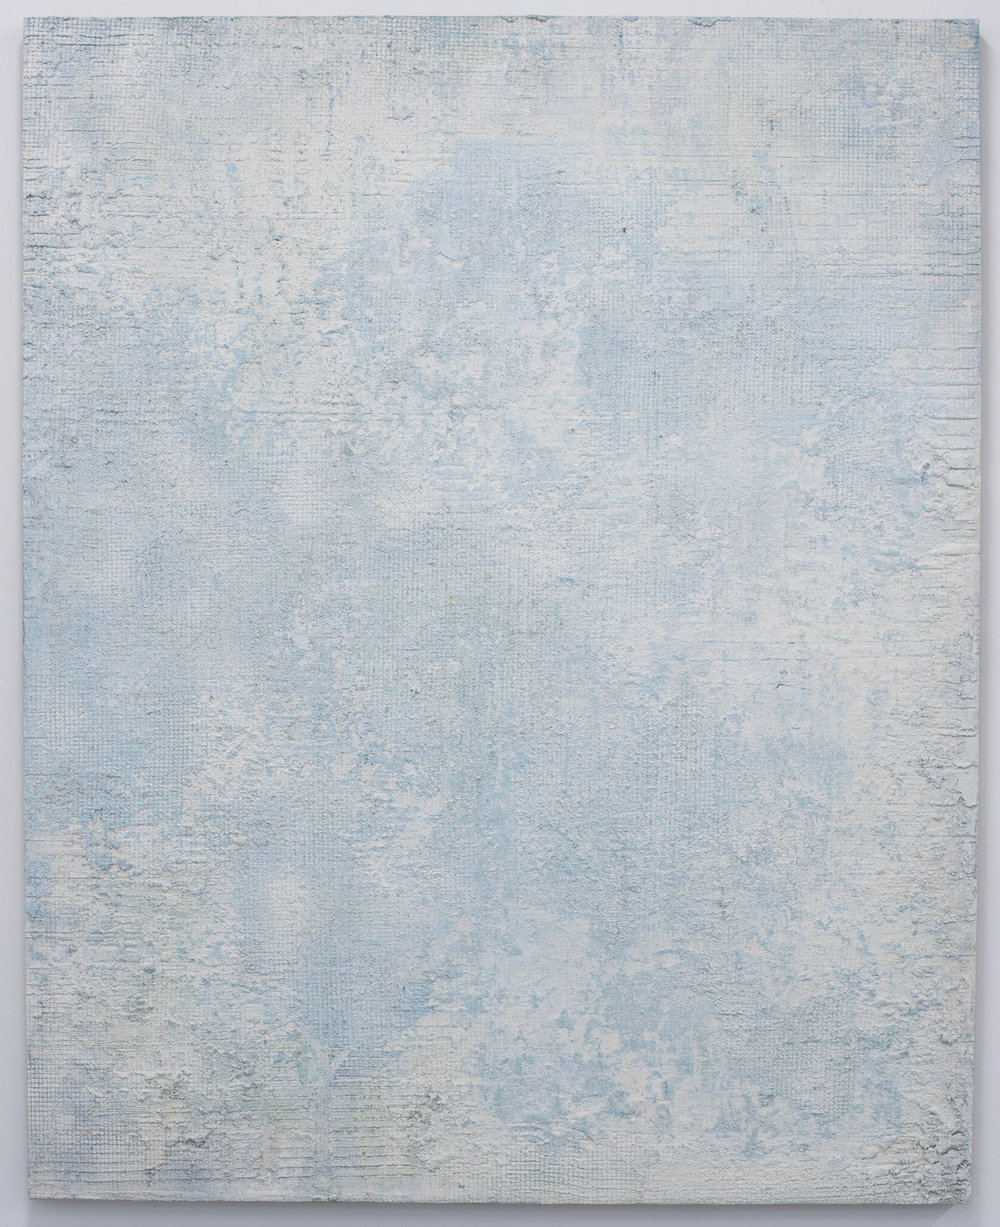 Untitled  , 2018 Mixed media on linen. 150 x 120 cm.